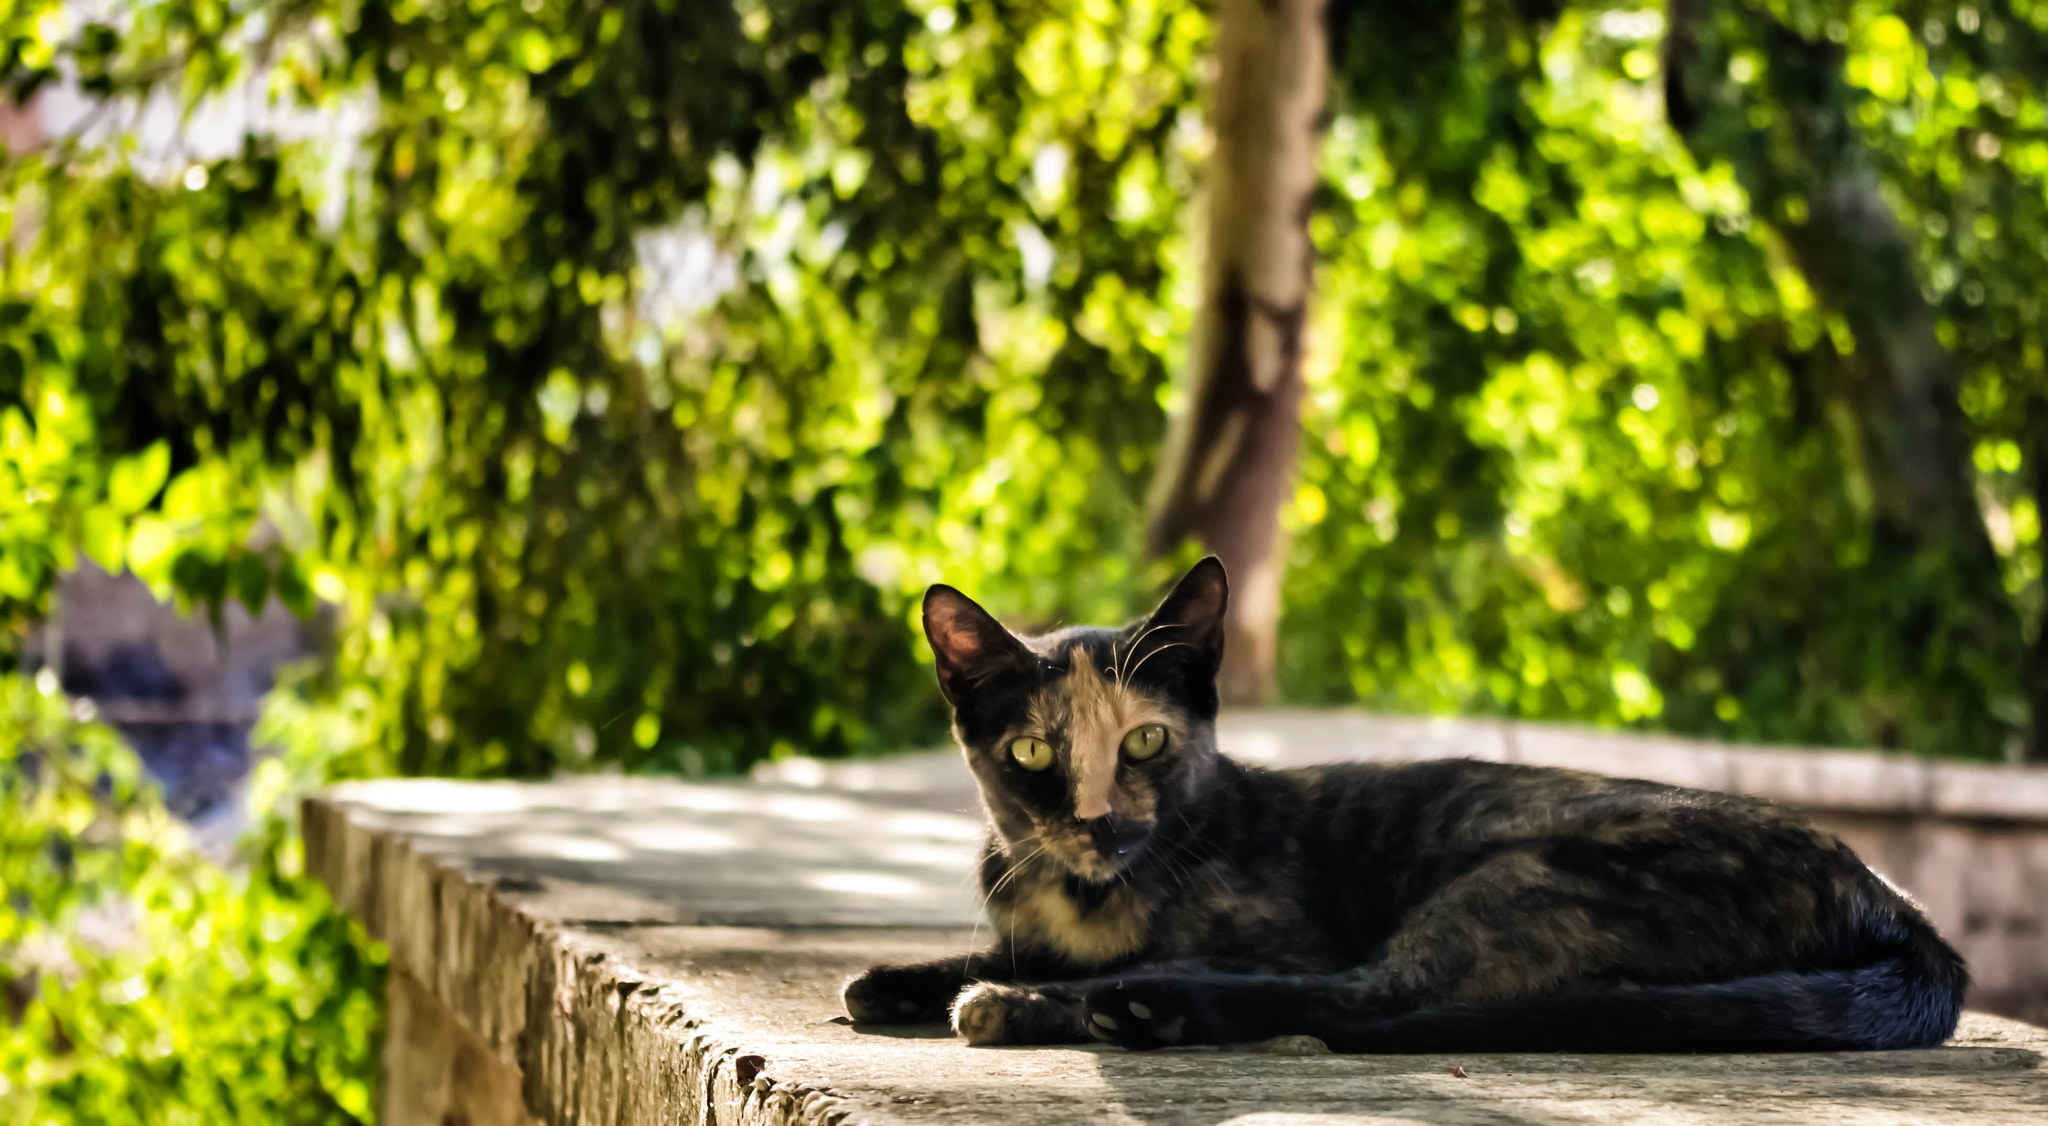 Photograph Cat, gato, chat by niko Kaptur on 500px